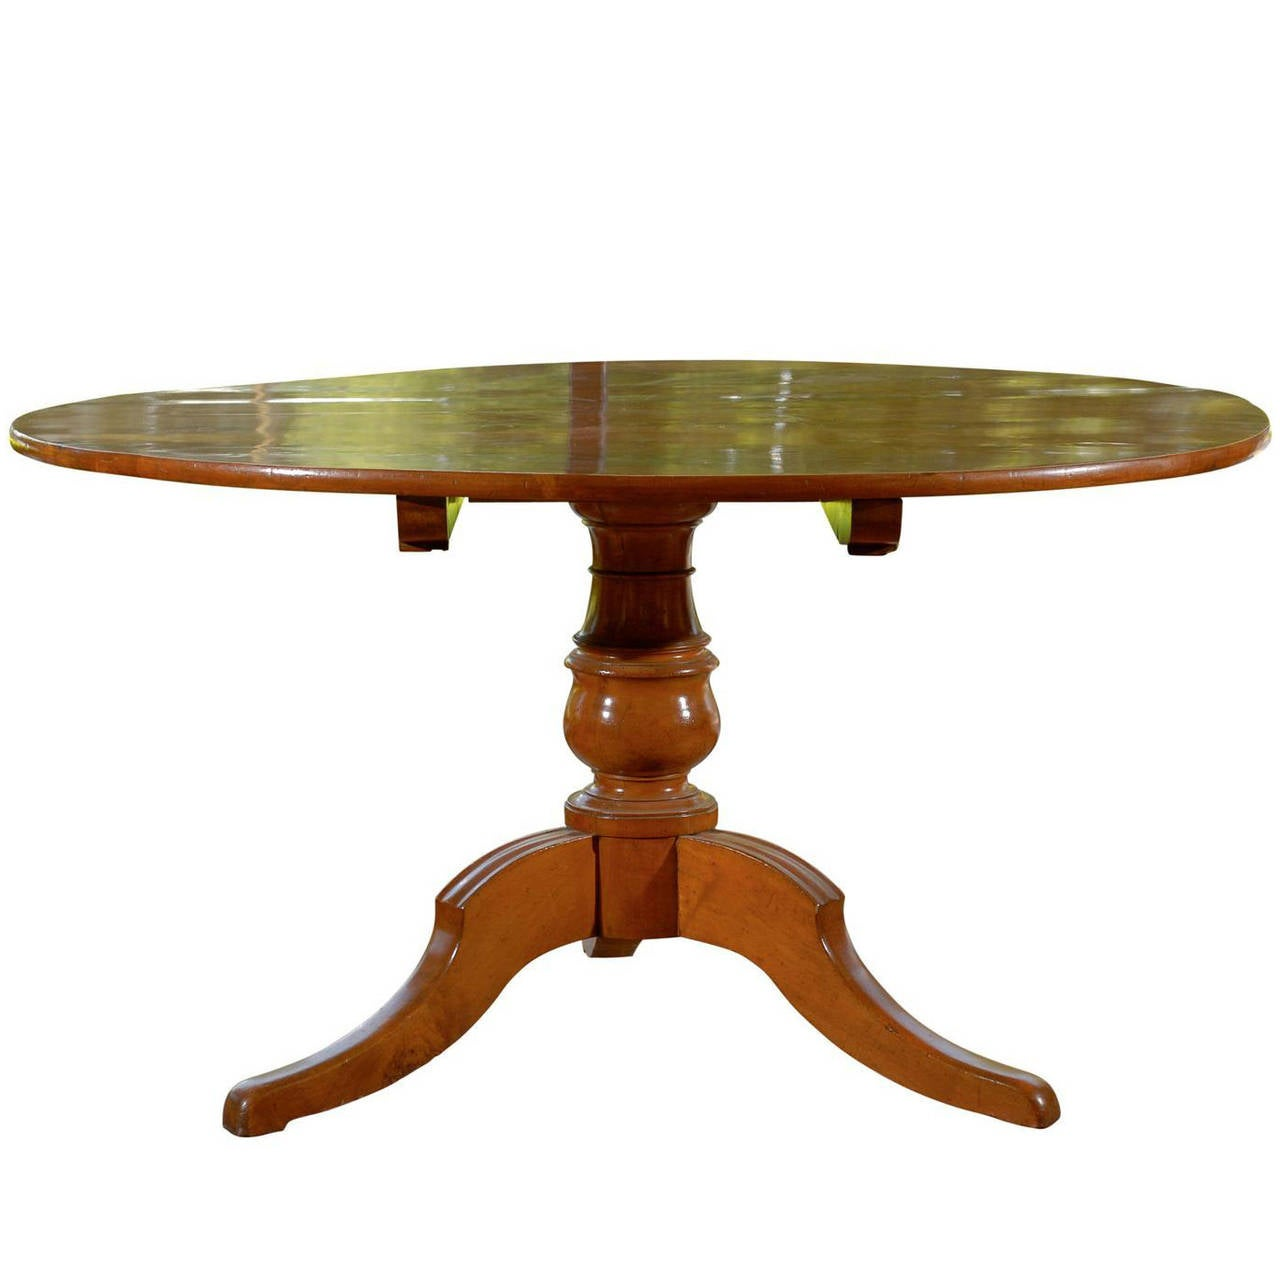 Italian 1850s Fruitwood Round Tilt Top Dining Table With Pedestal Base For Sale